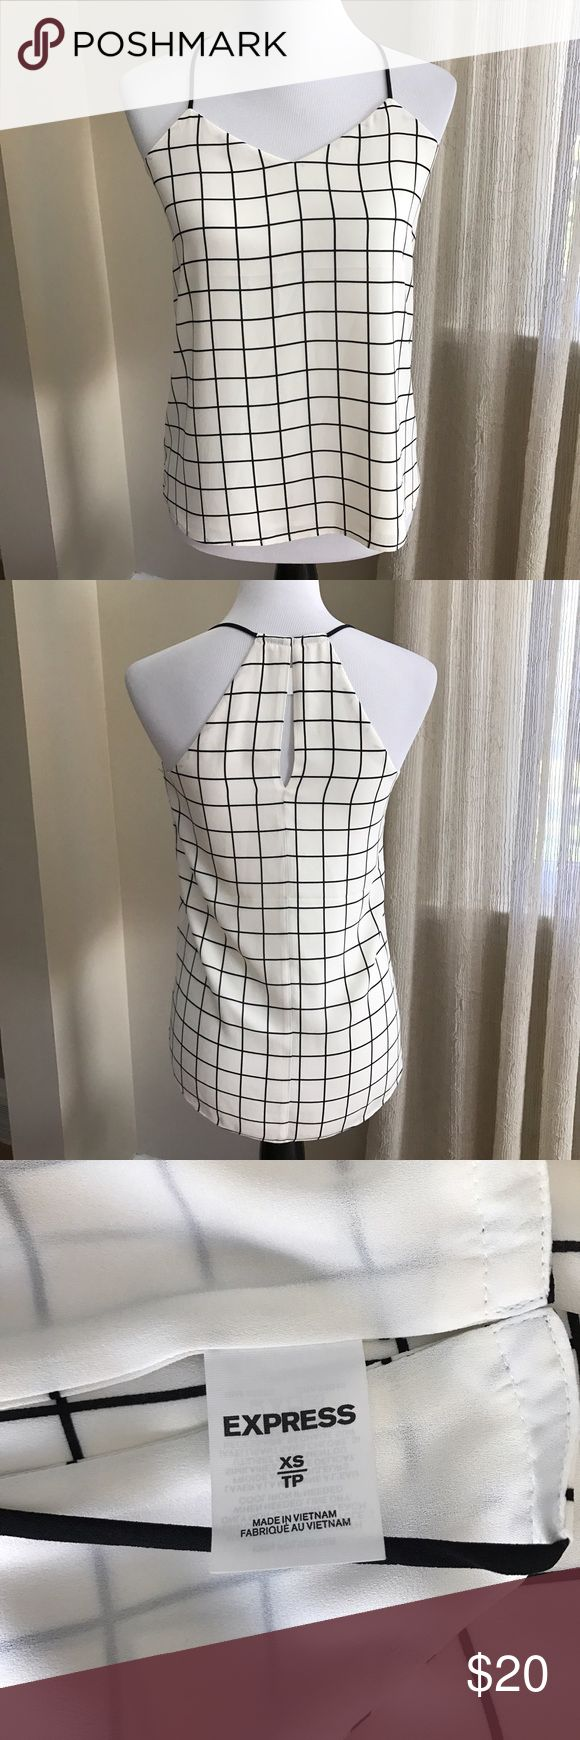 """Express Sleeveless Blouse Black and White XS Express Sleeveless Blouse Black and White XS. Fully lined. Arm pit to arm pit: 17"""". Under arm to hem: 18"""". 100% polyester. Express Tops Blouses"""